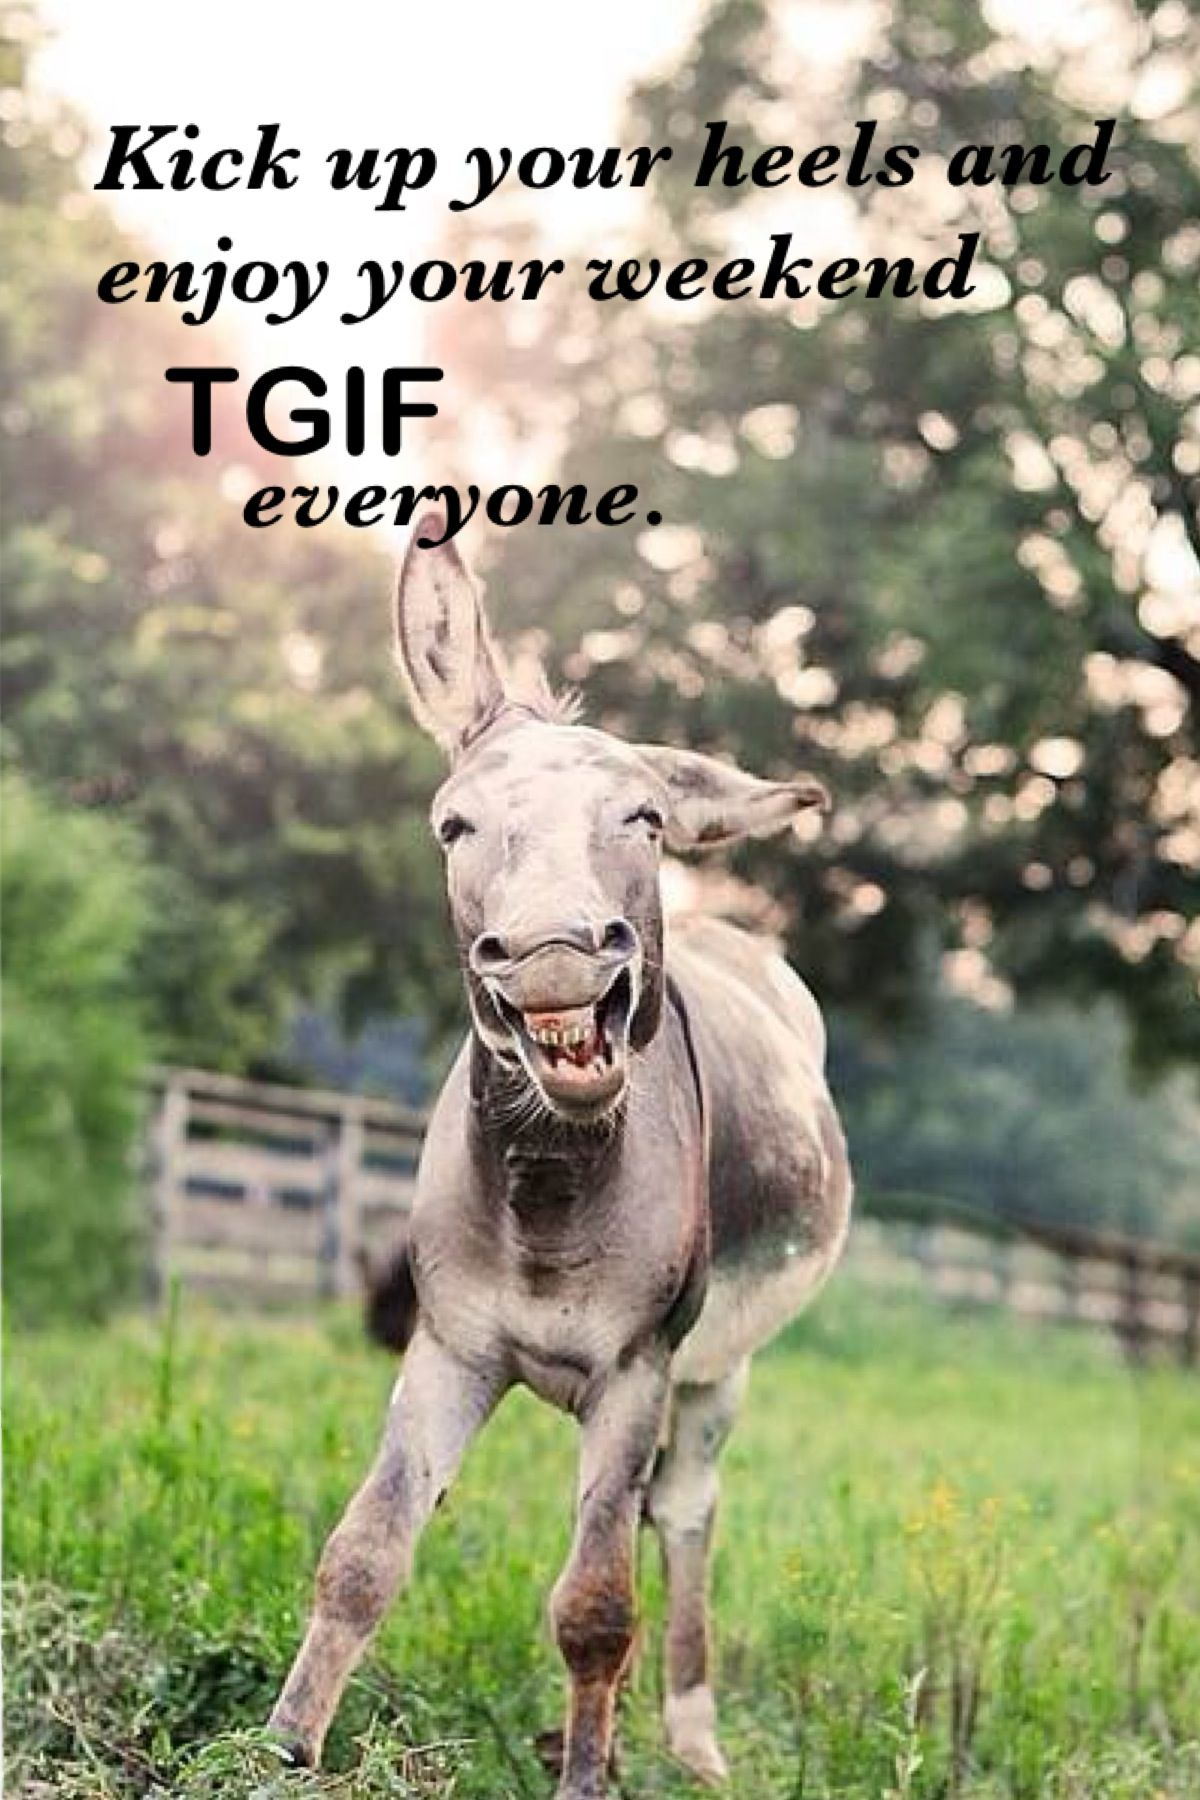 Good Morning TGIF | My Quotes of the day. ♥ | Pinterest ...